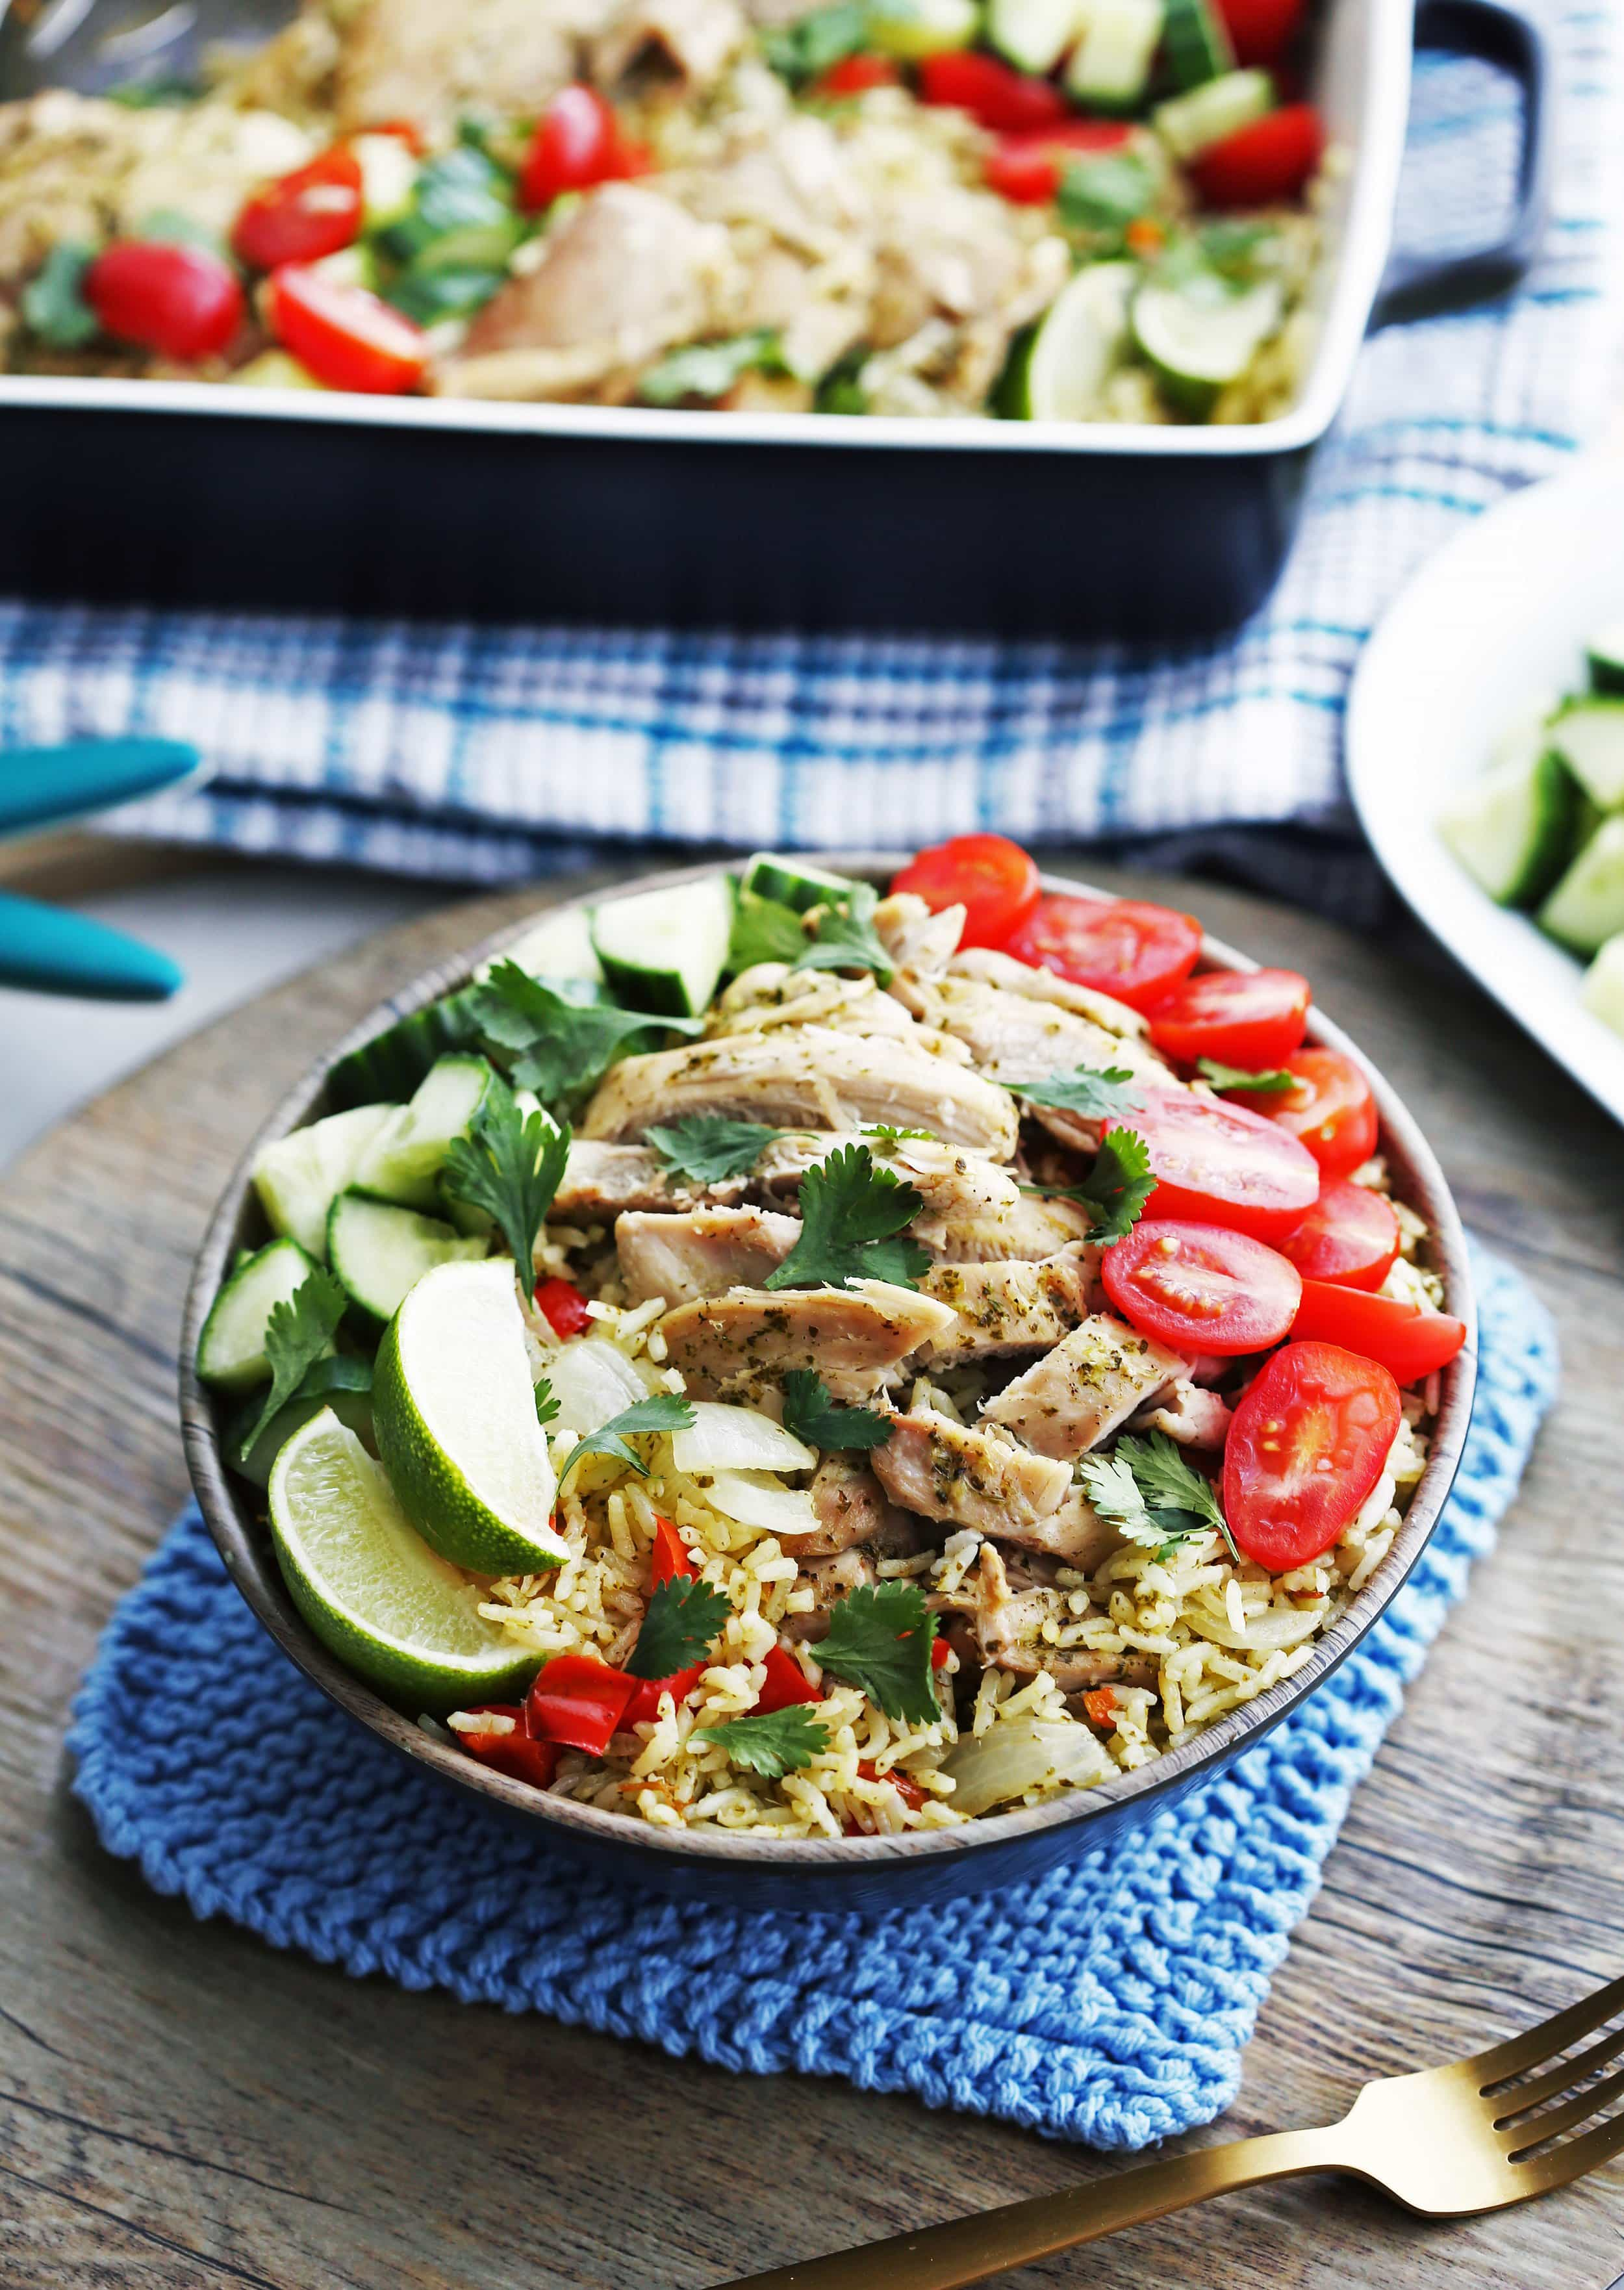 Cilantro Lime Chicken and Rice with tomatoes, cucumbers, cilantro, and lime wedges in a wooden bowl.